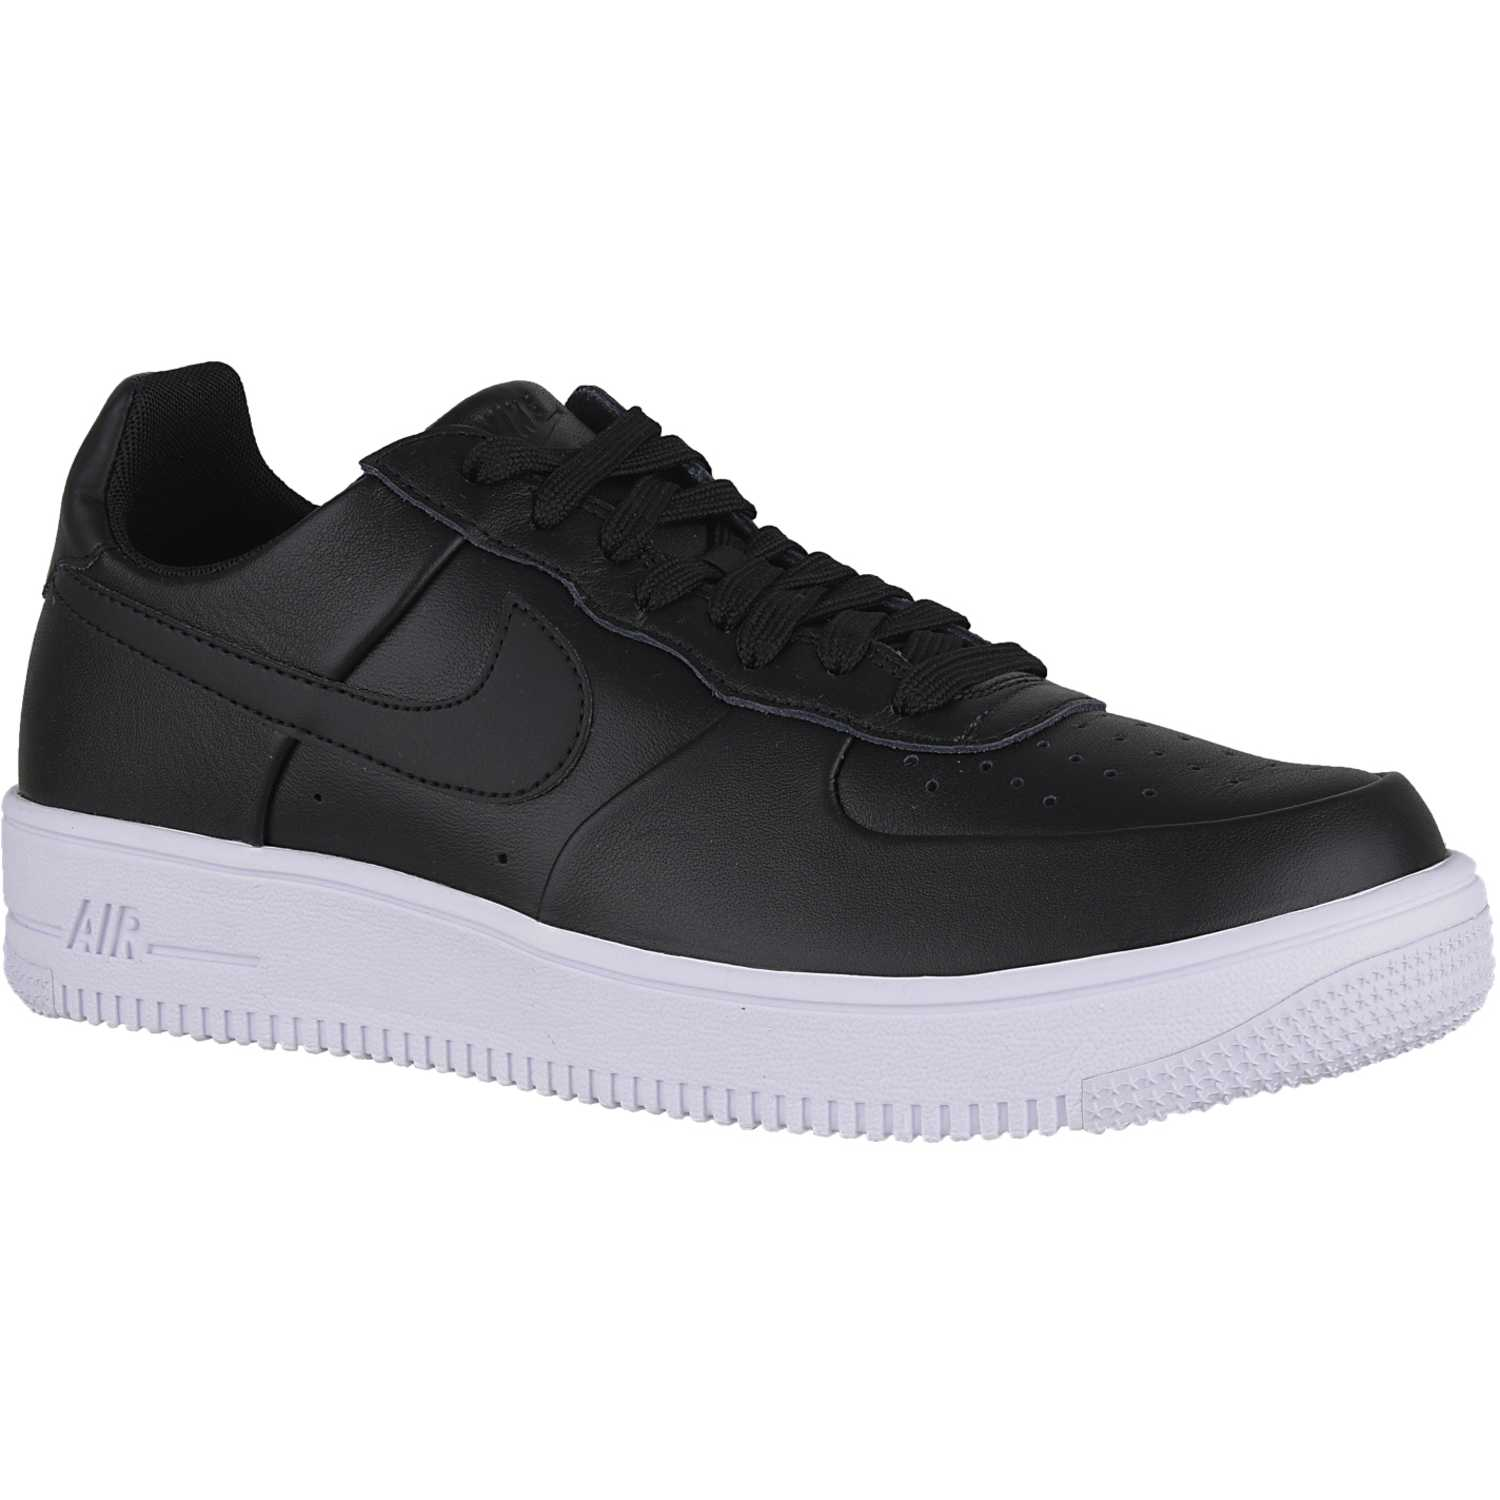 16288c9086f41 Zapatilla de Hombre Nike Negro   blanco air force 1 ultraforce lthr ...